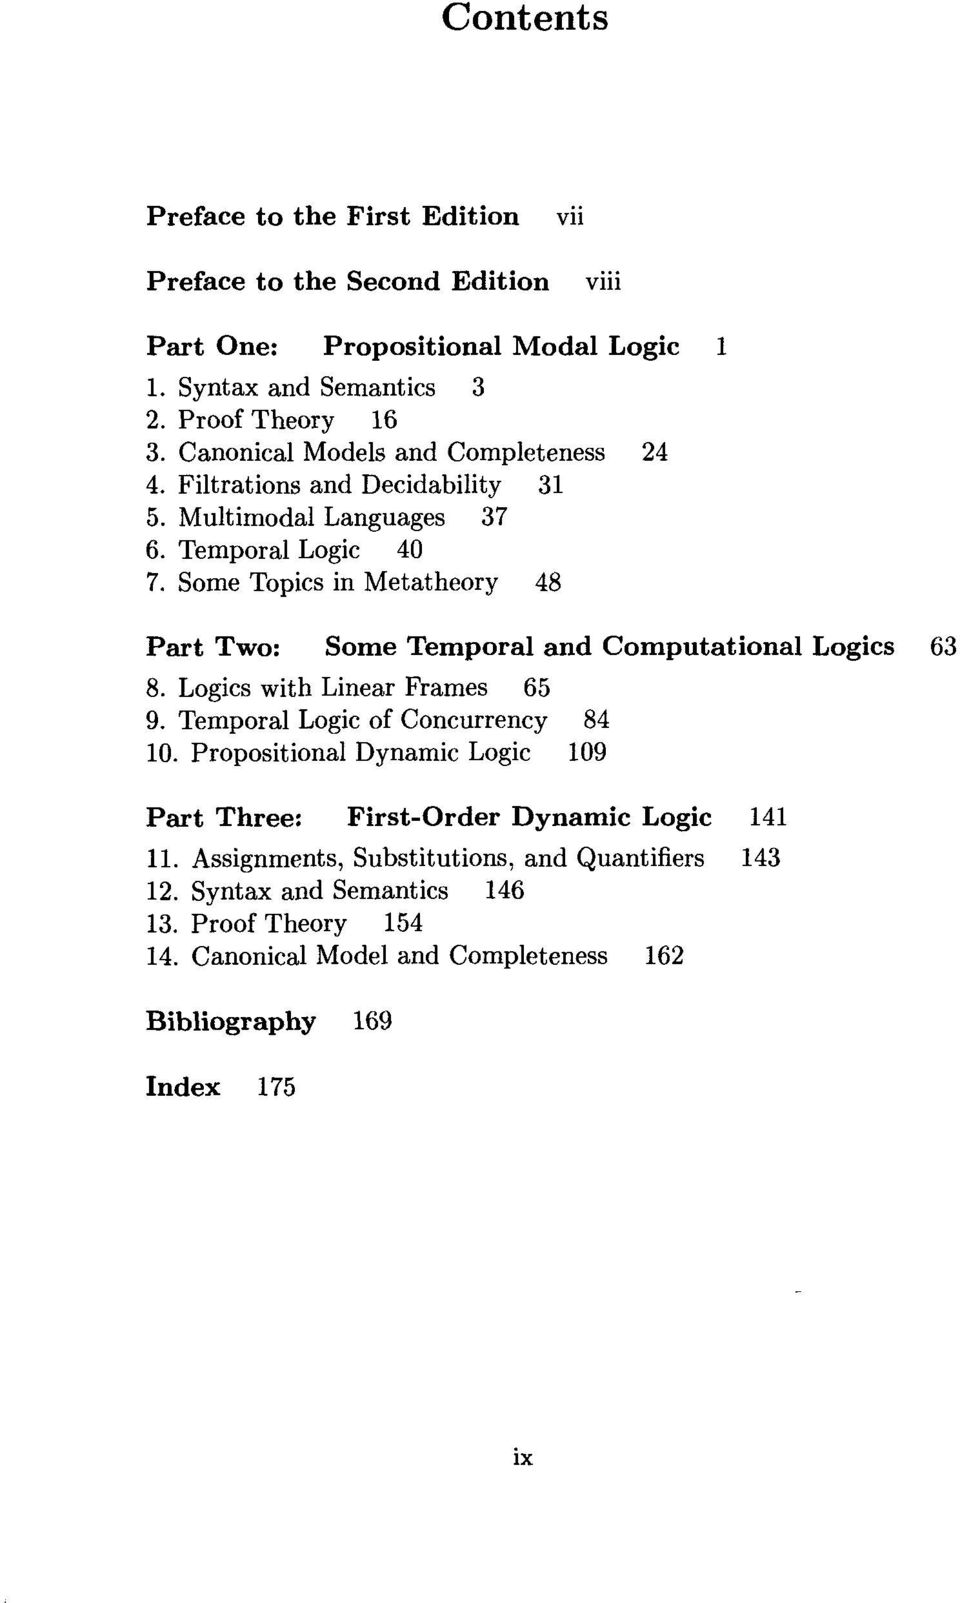 Some Topics in Metatheory 48 Part Two: Some Temporal and Computational Logics 63 8. Logics with Linear Frames 65 9. Temporal Logic of Concurrency 84 10.